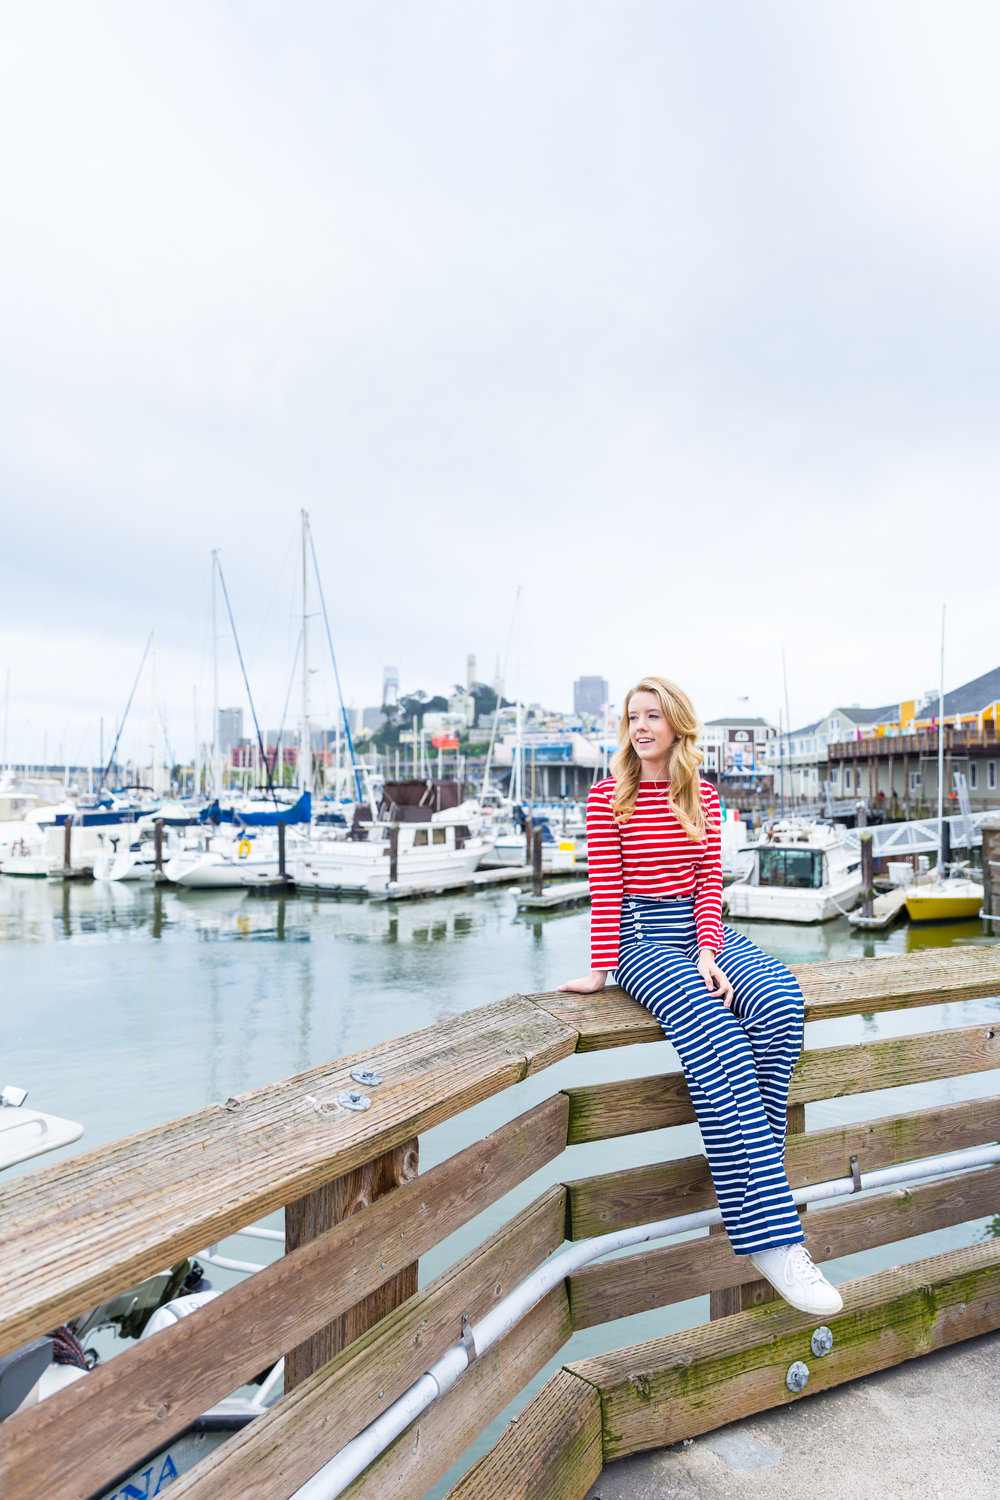 Striped Nautical Sunset Sail Outfit San Francisco.jpg